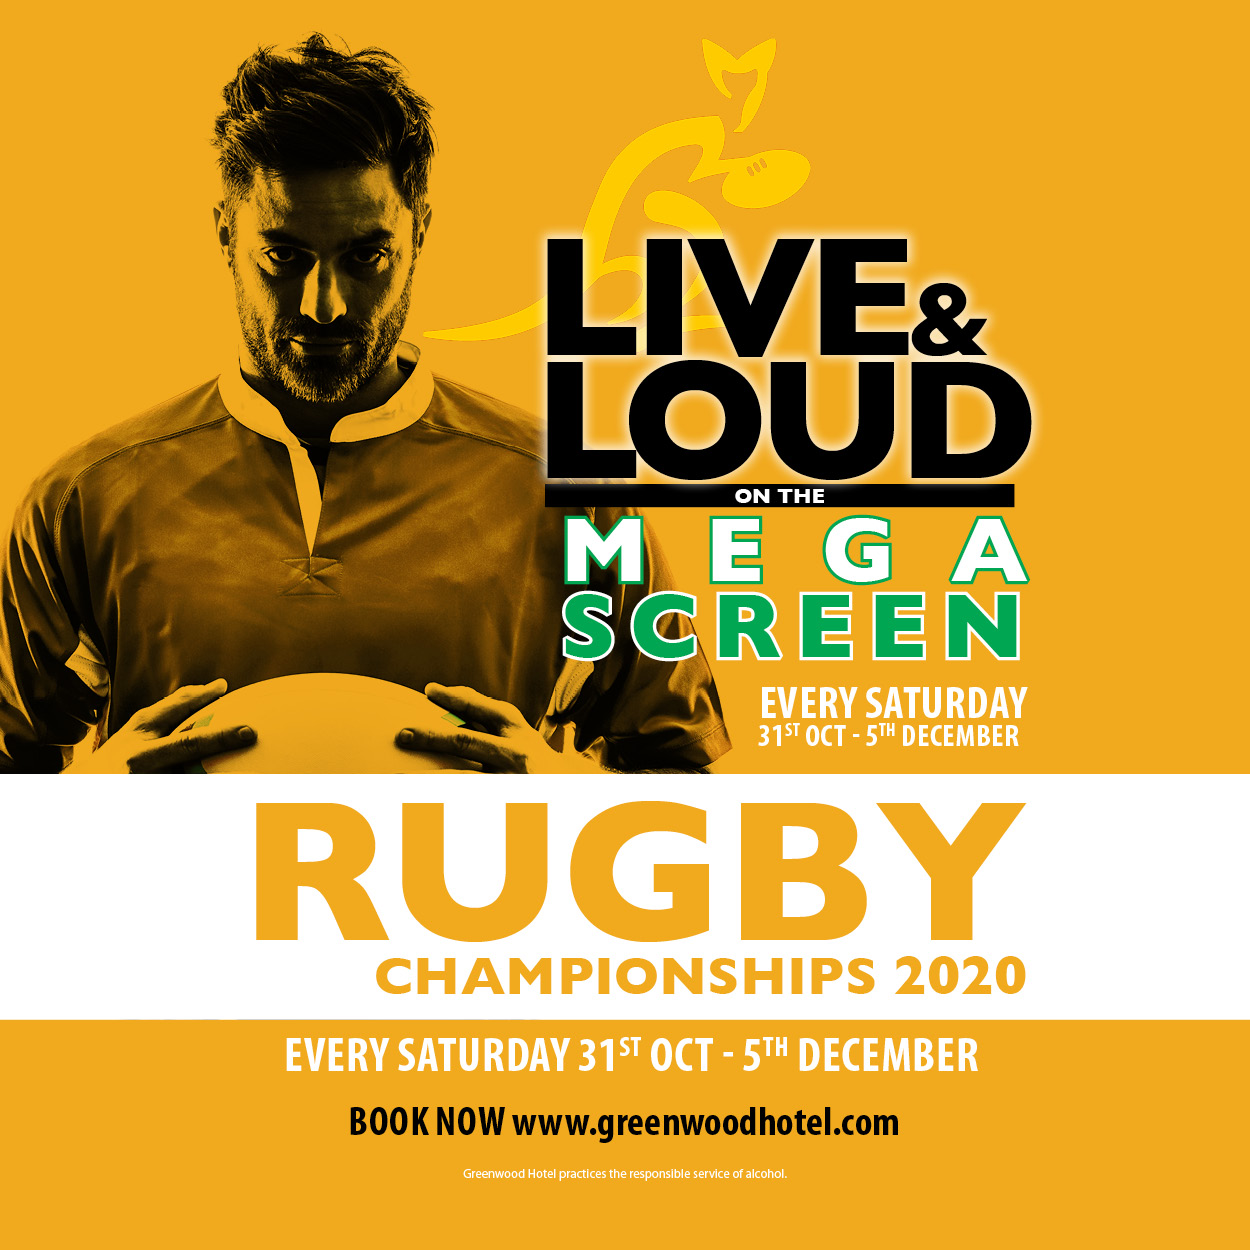 Rugby Championship Live and Loud at Greenwood